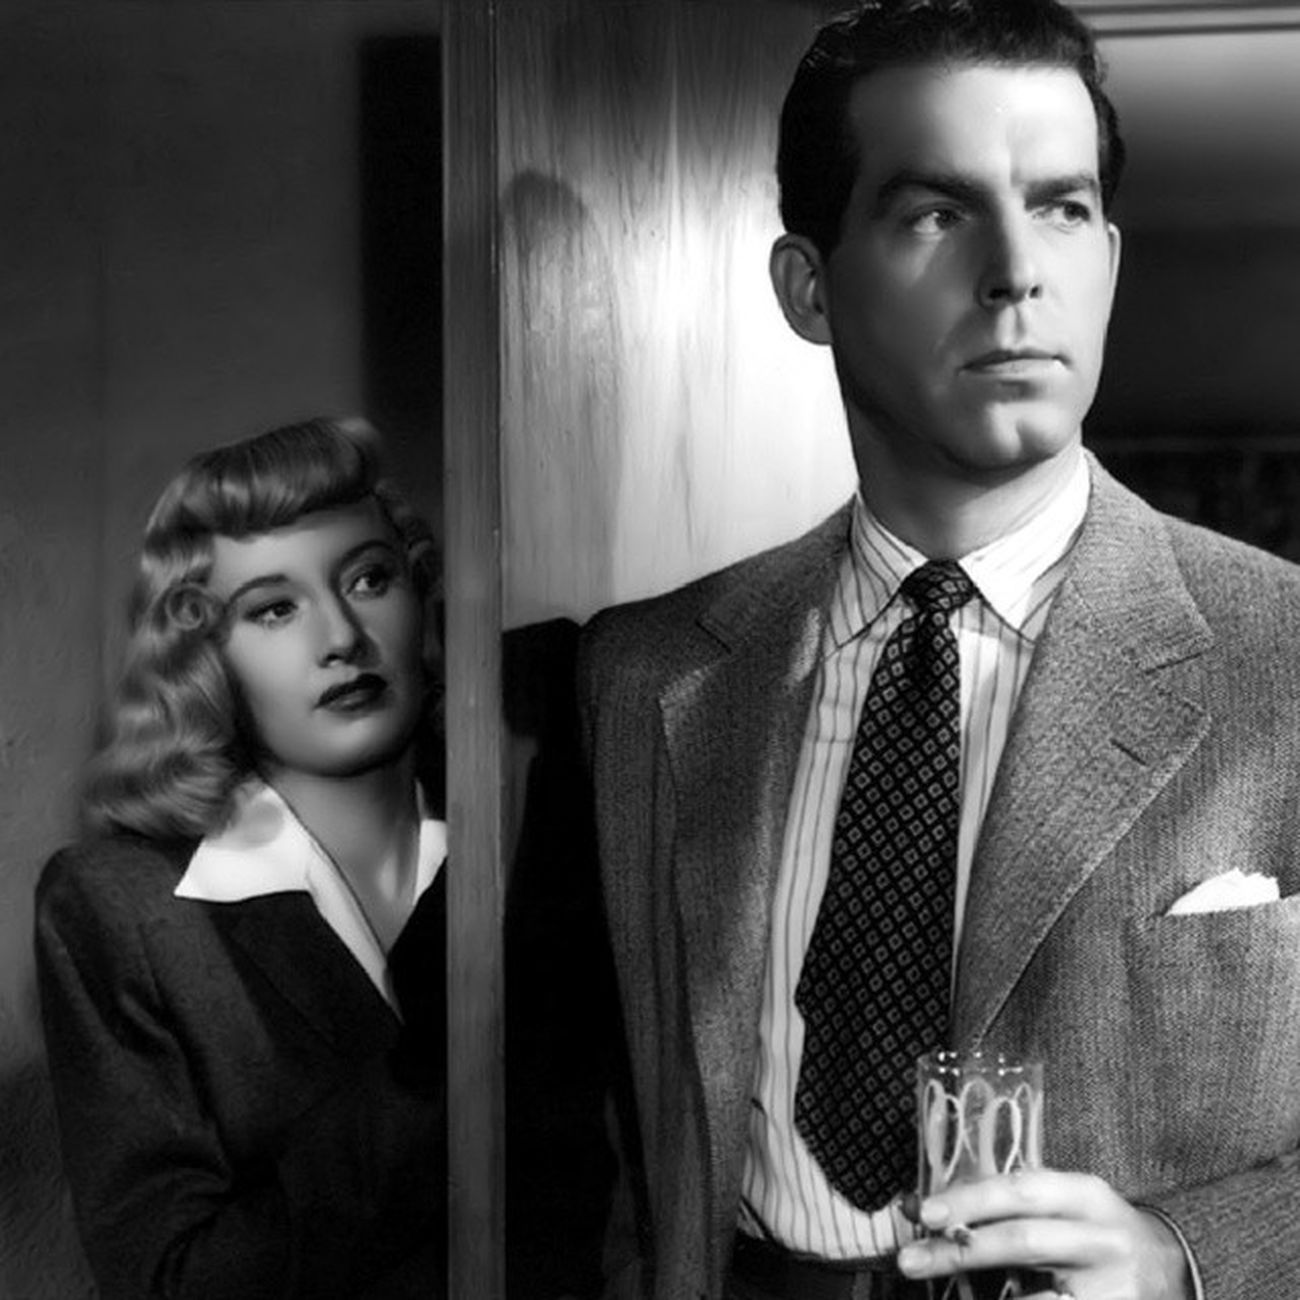 Tonight at midnight! Released on blu ray DoubleIndemnity BarbaraStanwyck FredMacMurray